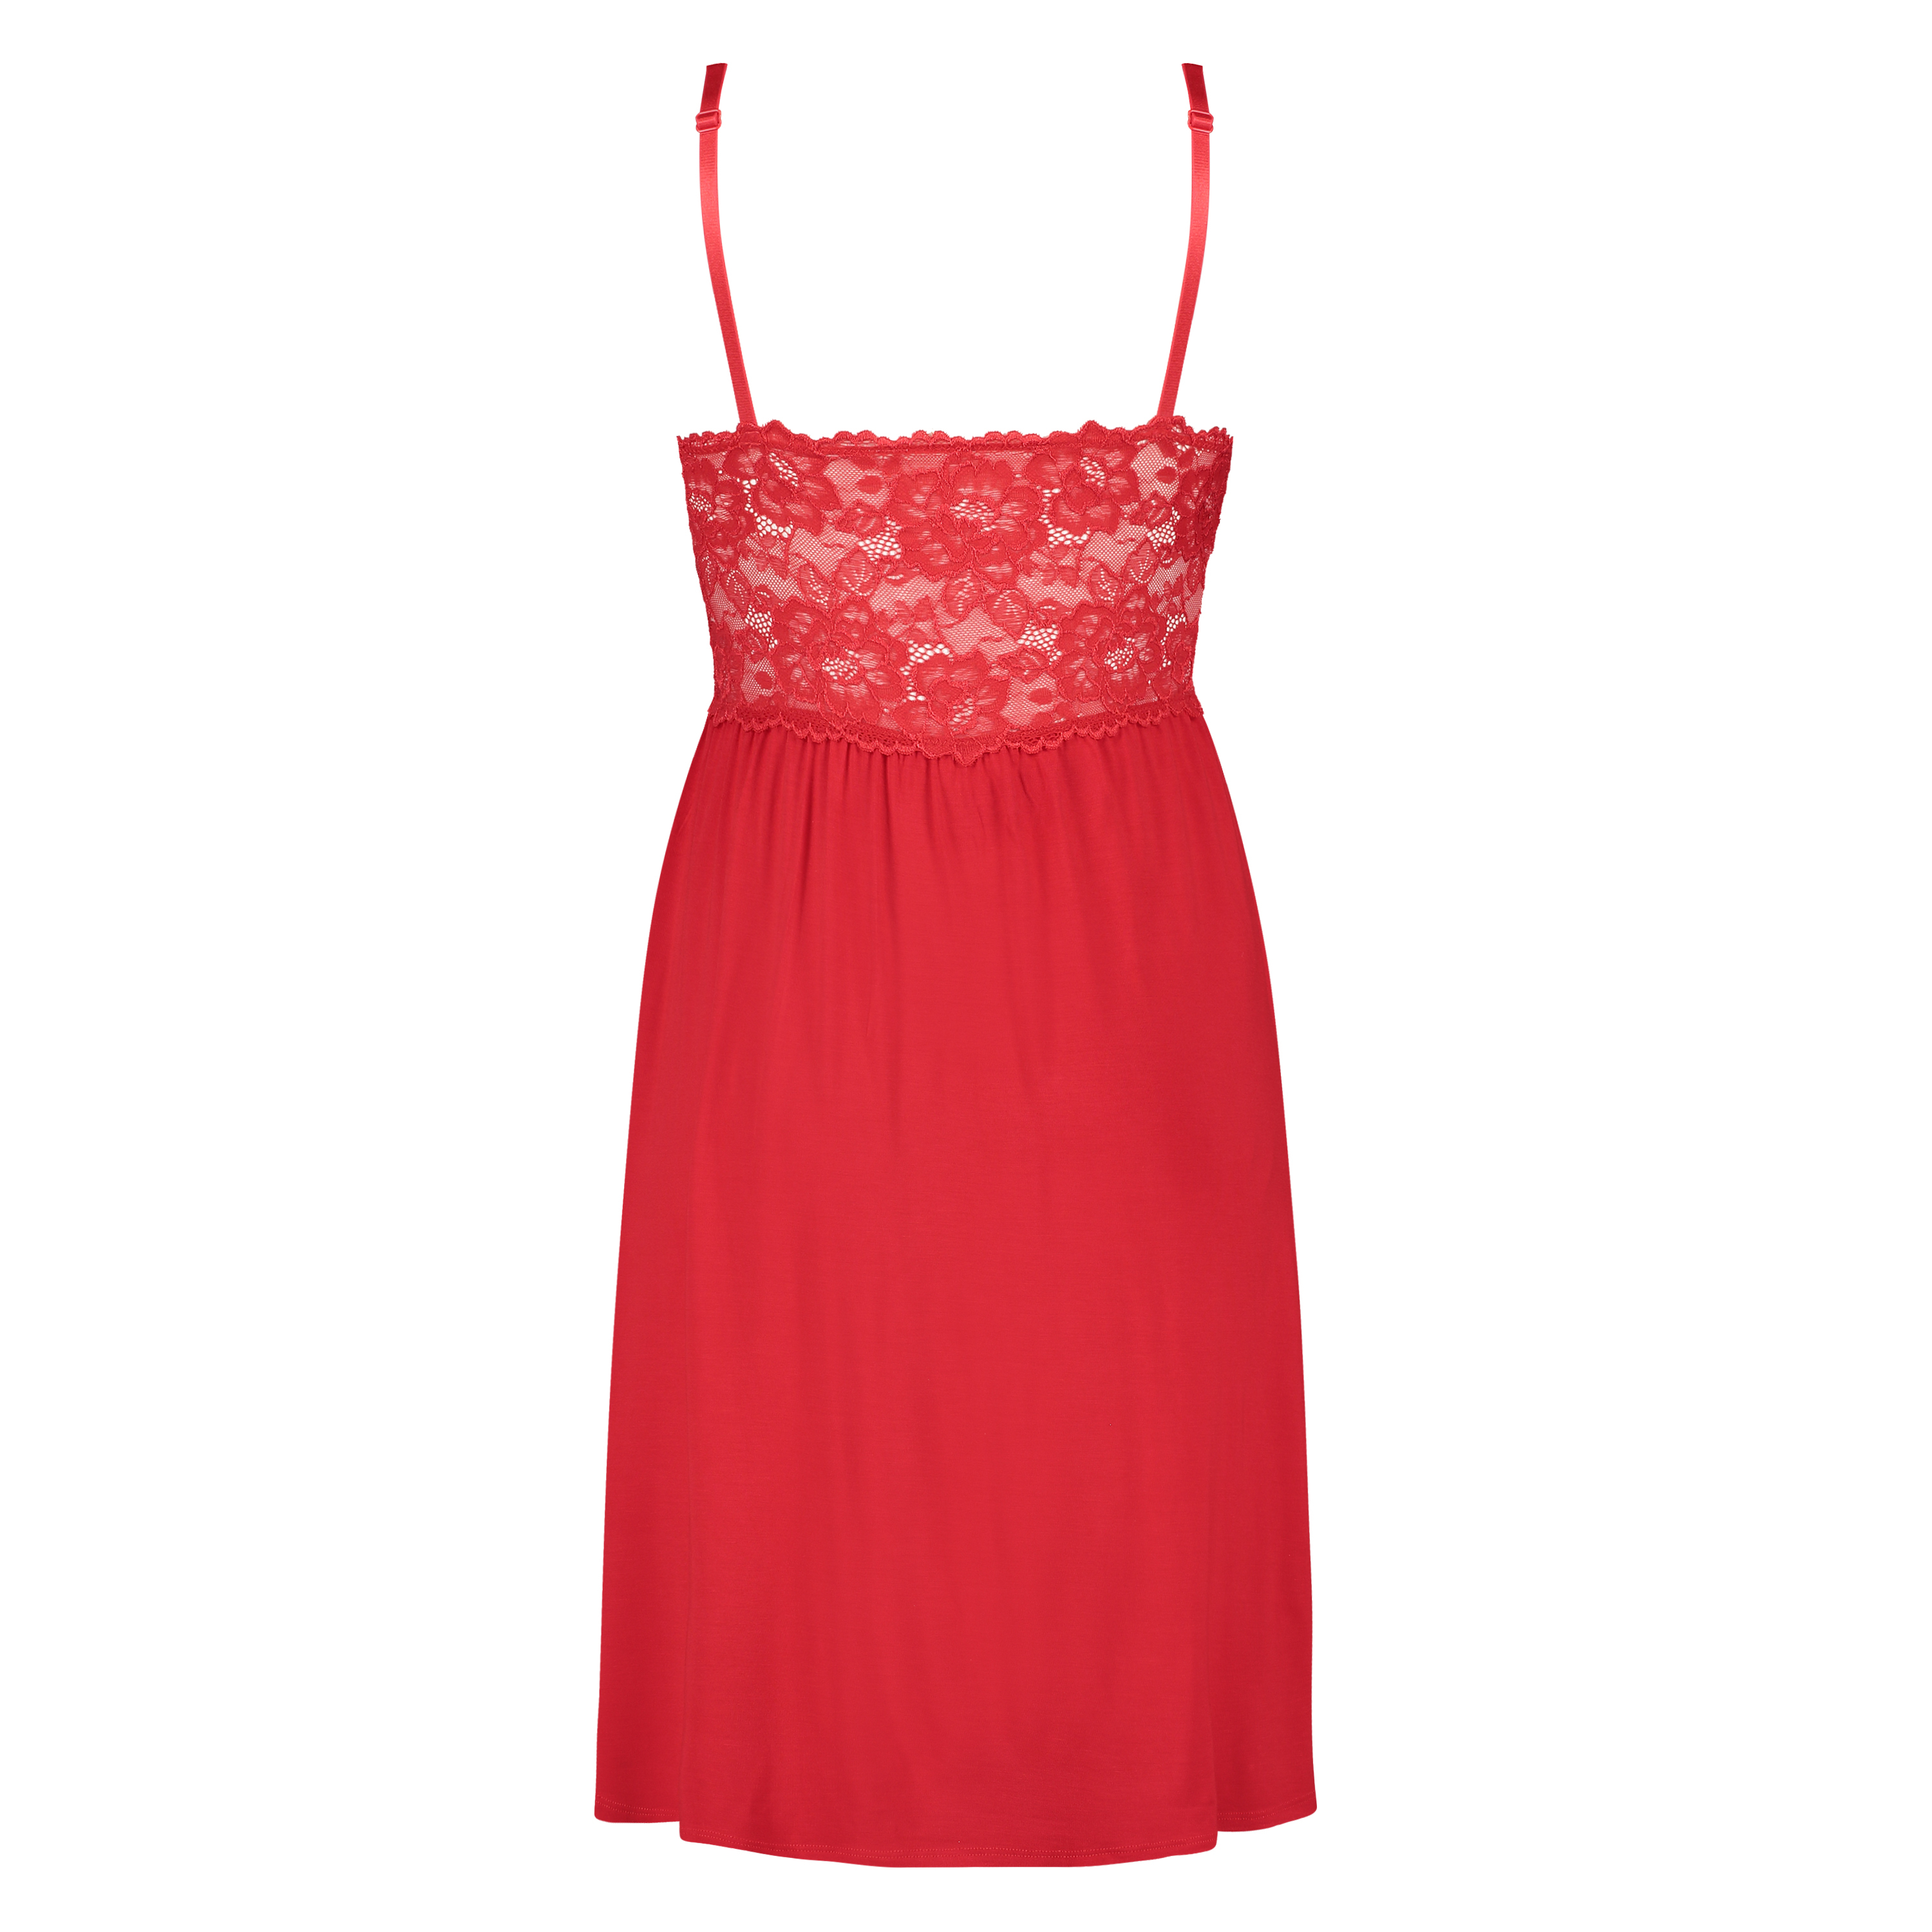 Nuisette Modal Lace, Rouge, main